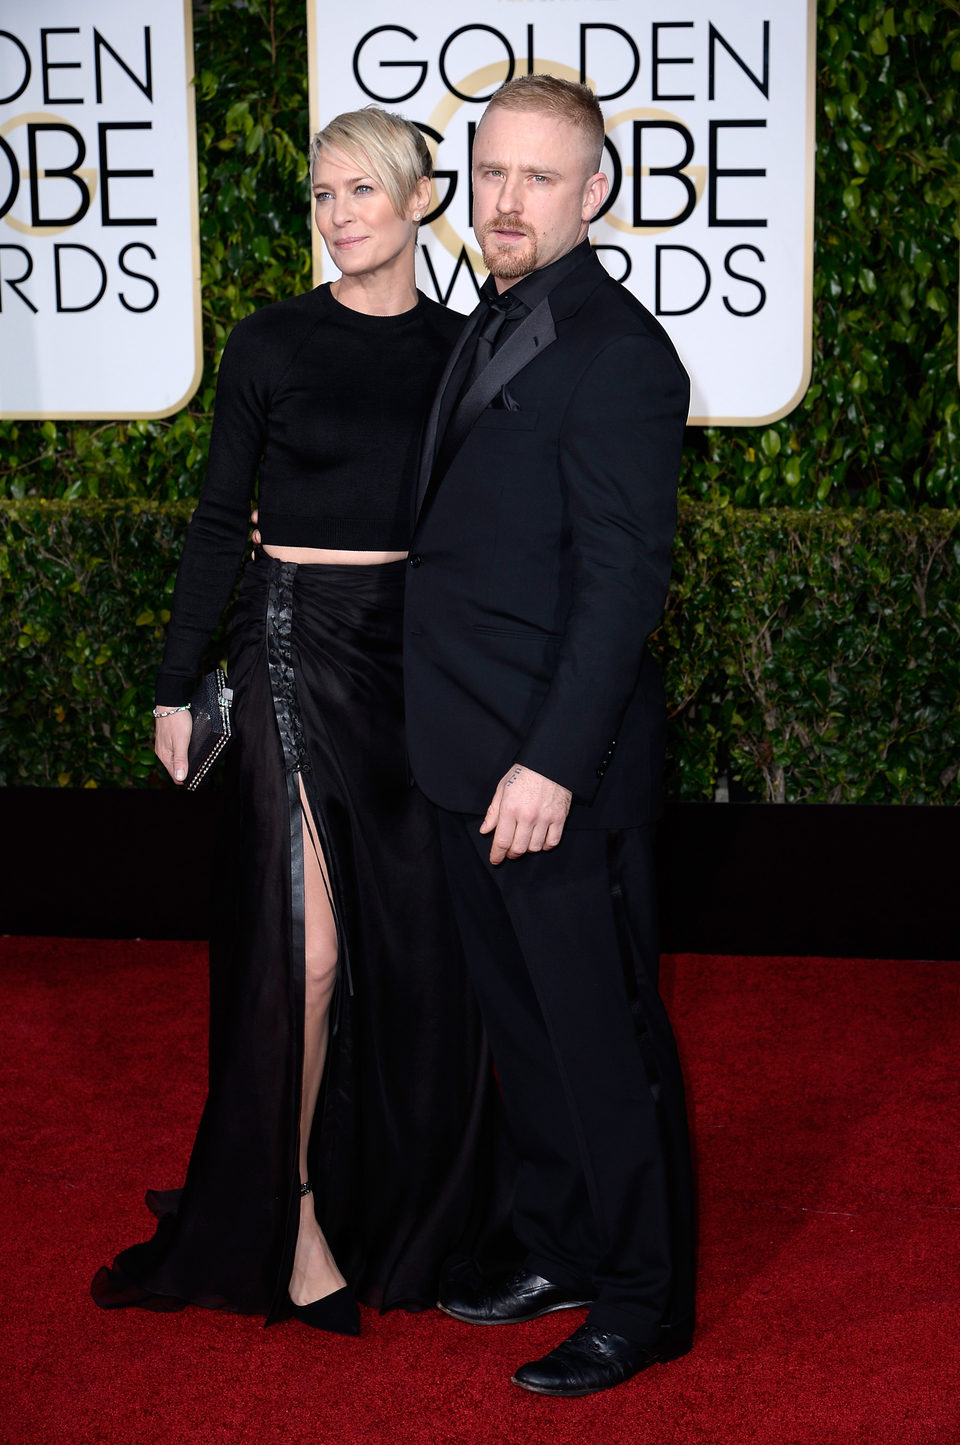 Robin Wright and Ben Foster at the Golden Globes 2015 red ...